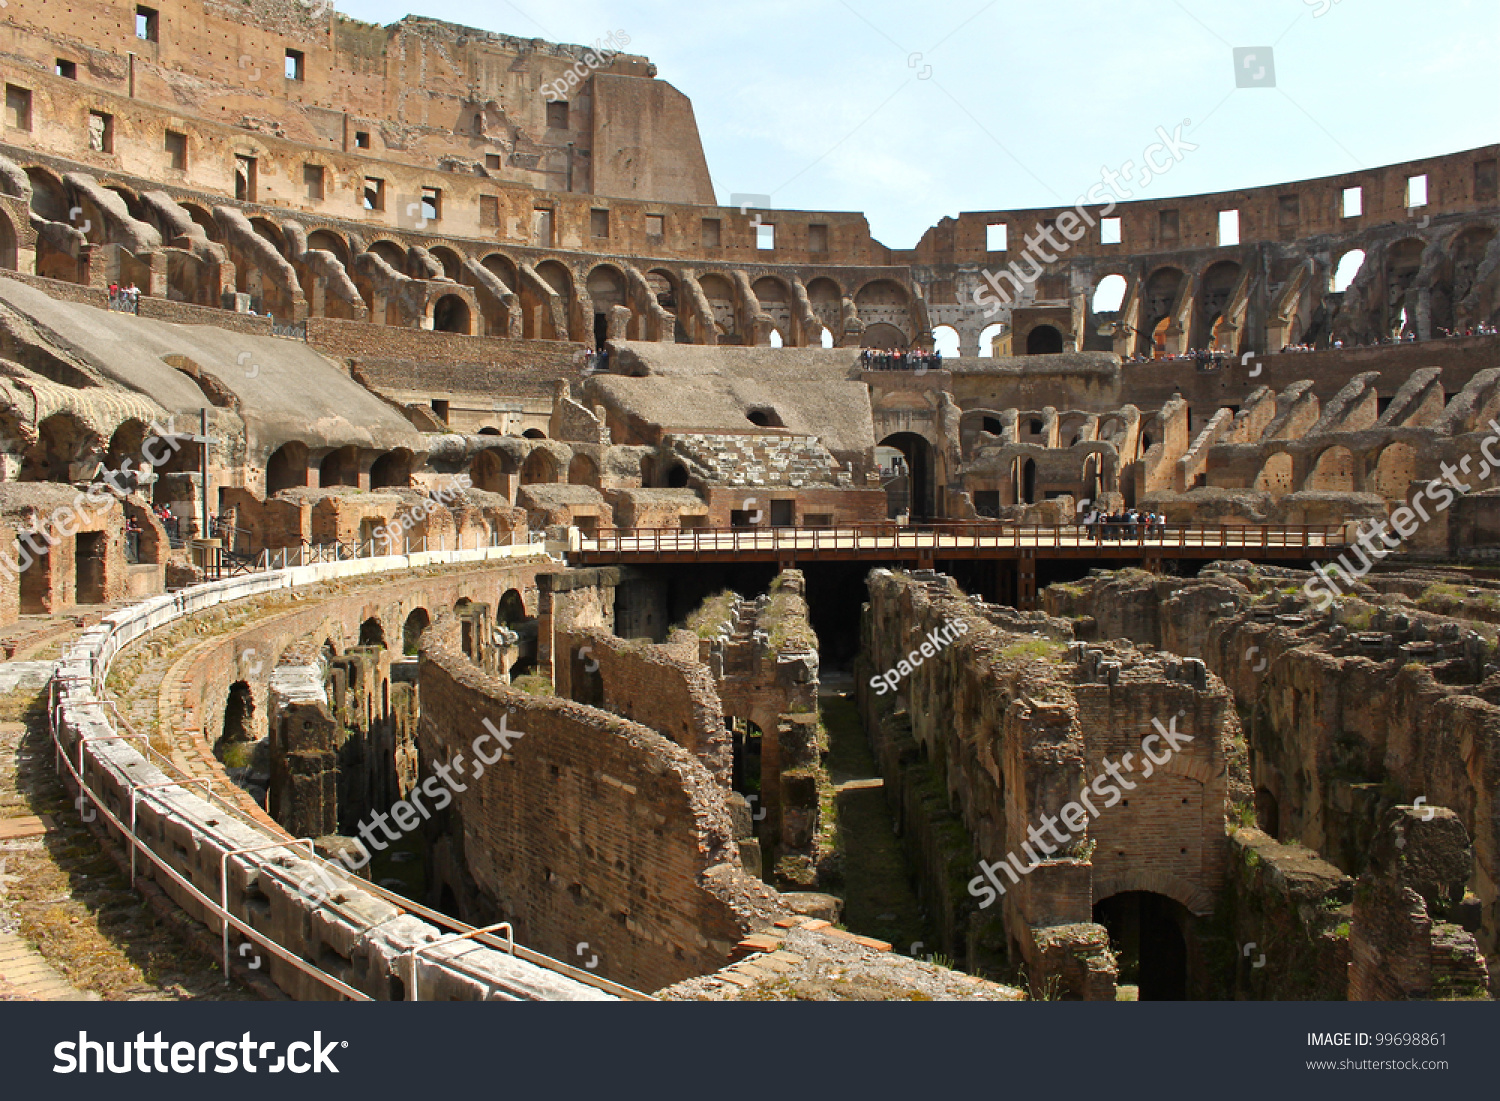 Inside The Colosseum In Rome, Italy. Stock Photo 99698861 ...